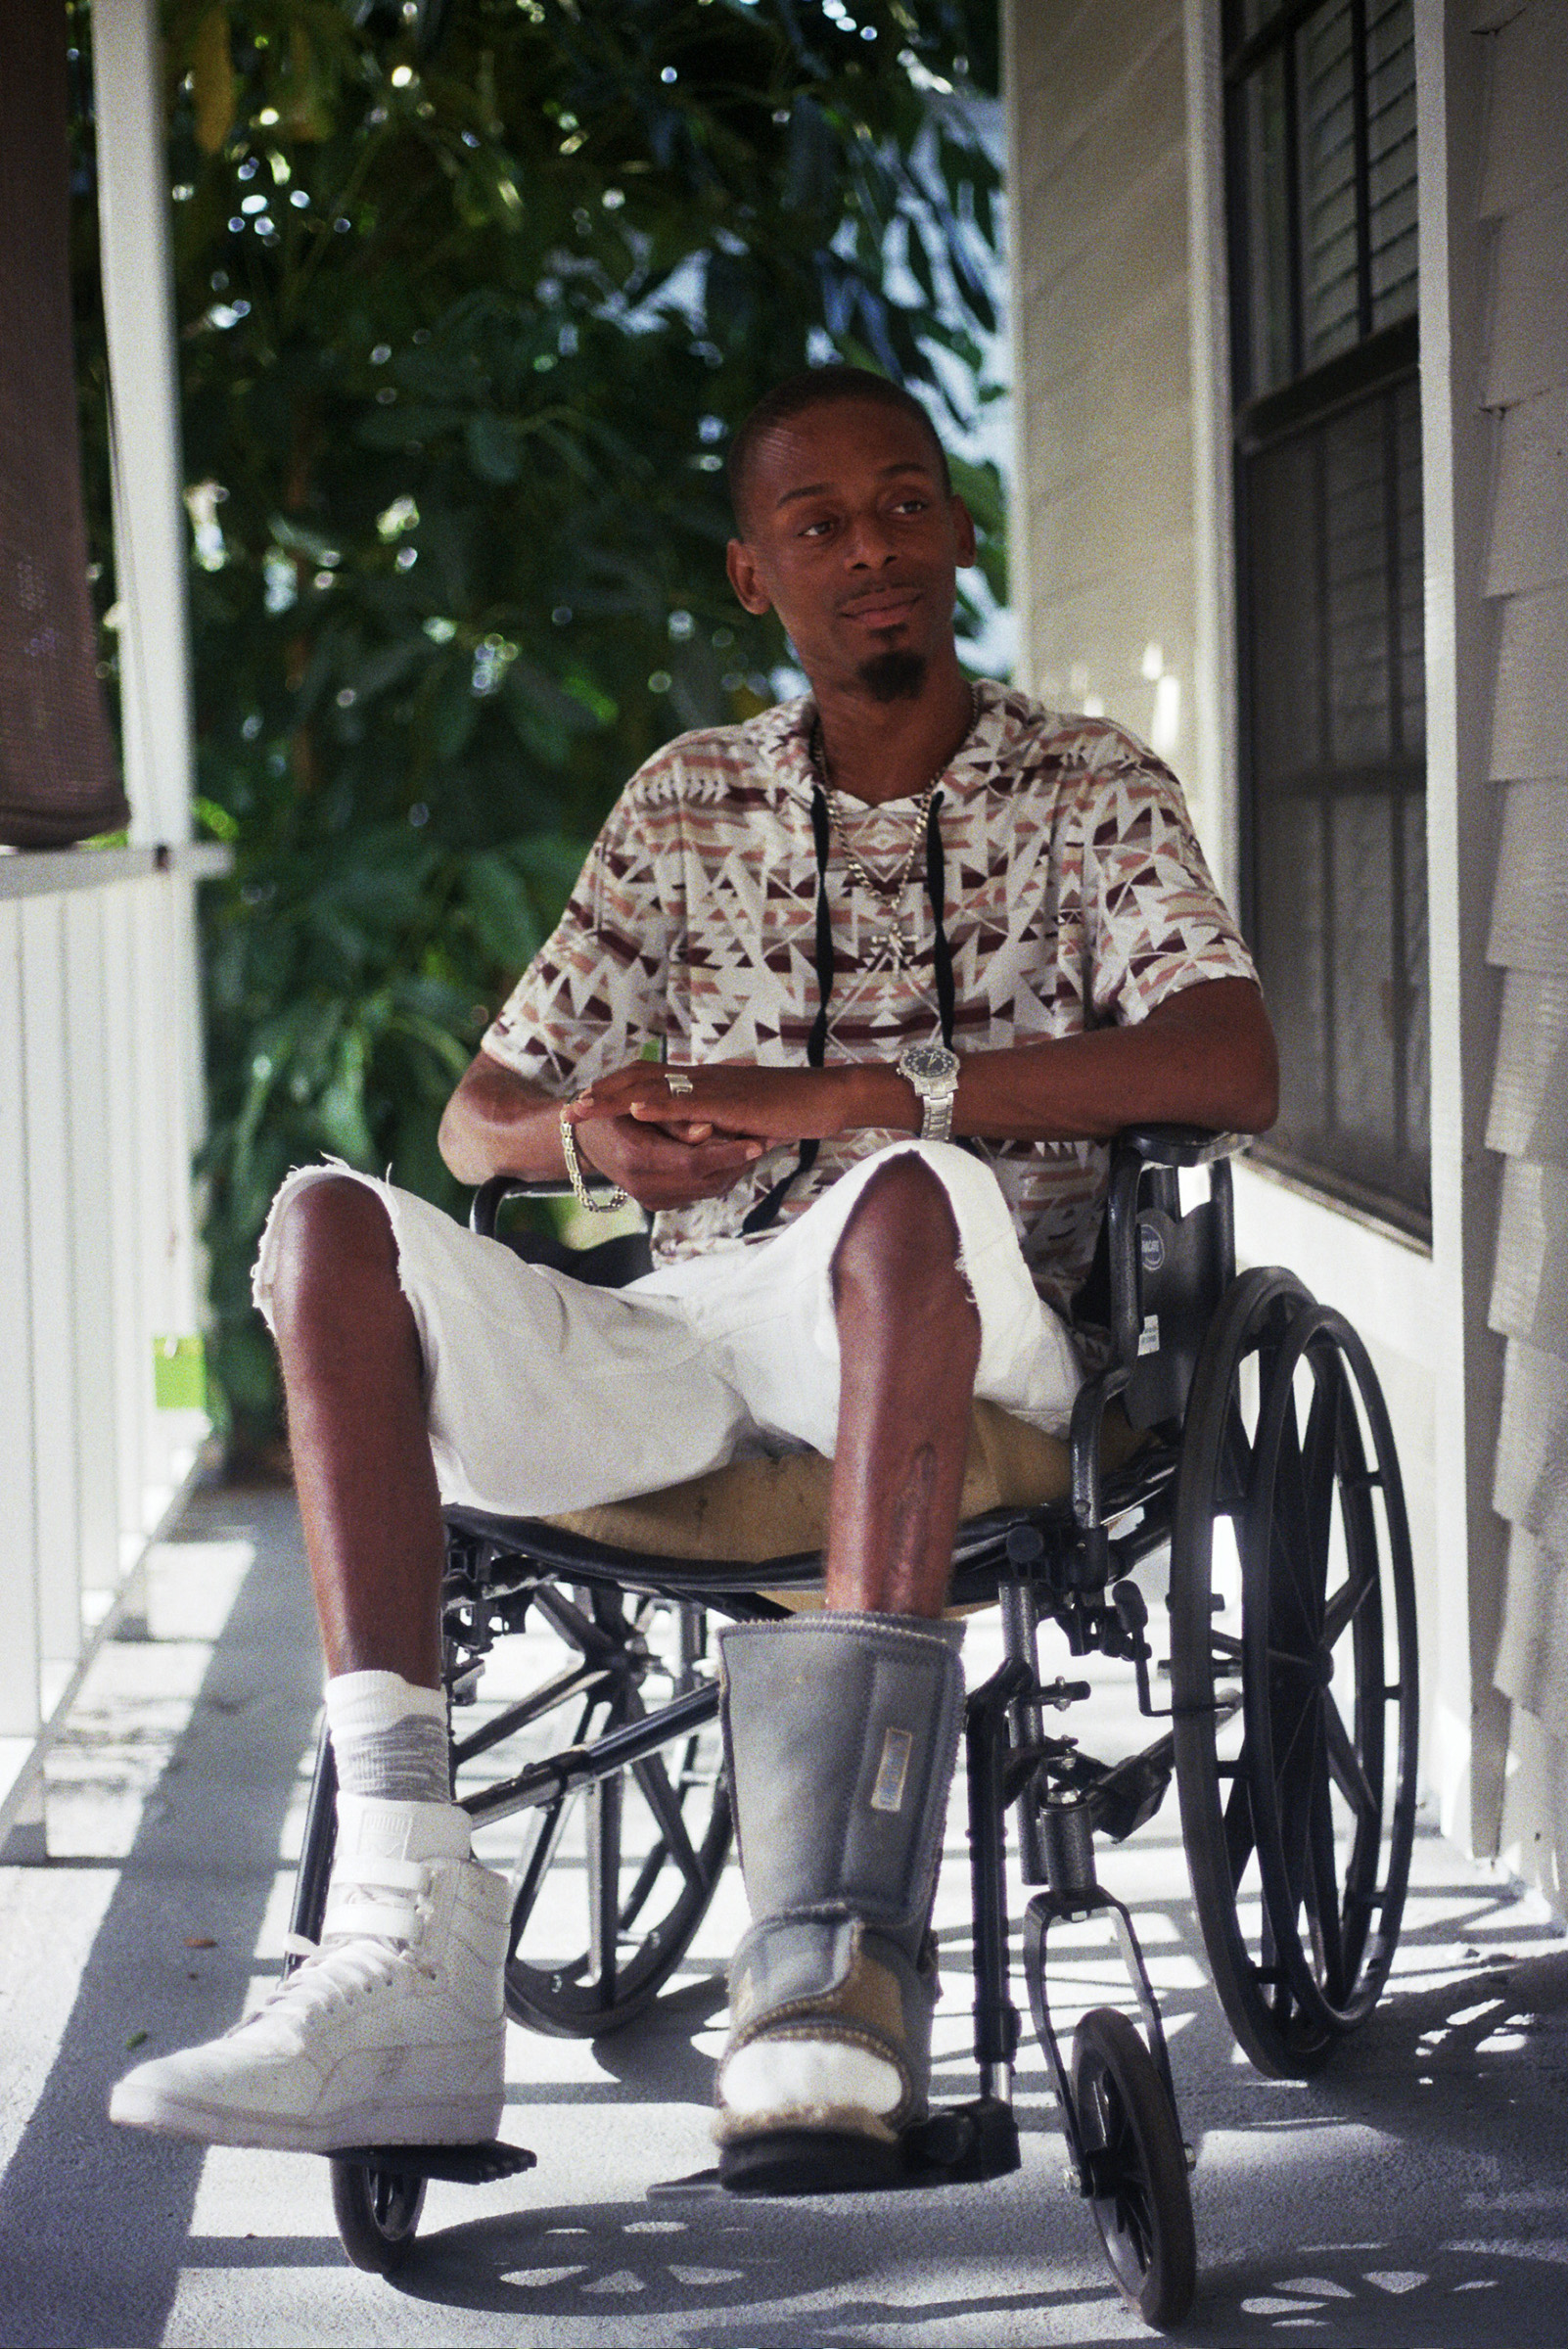 Florida shooting survivor Keinon Carter at his home in June 2017.